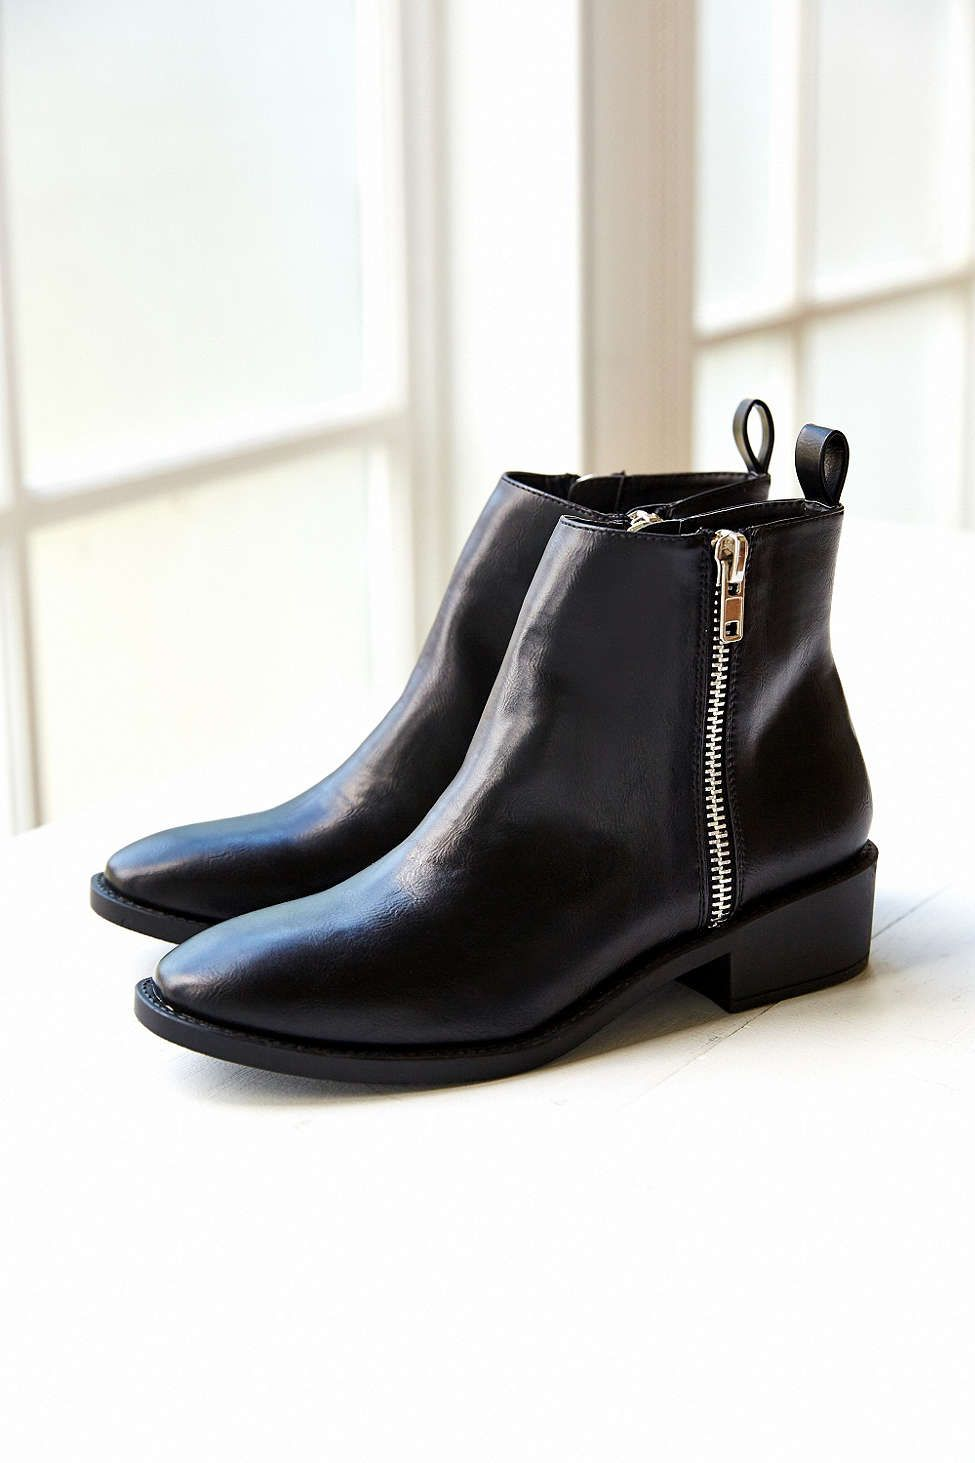 35525c2cb8 Monty Two Zipper Boot - Urban Outfitters | Shoes Shoes Shoes ...